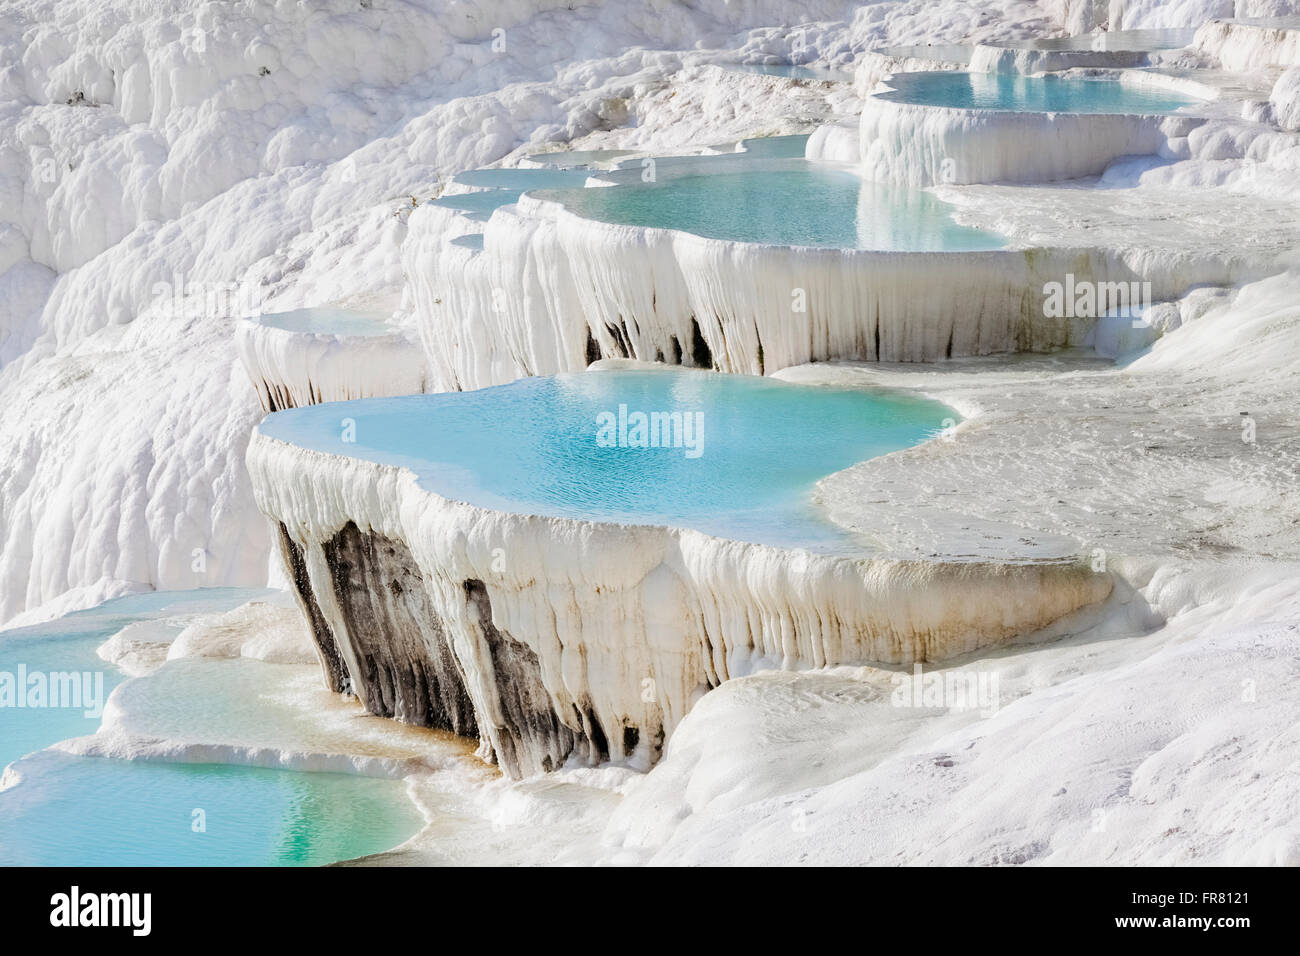 Hot springs and travertines, terraces of carbonate minerals left by the flowing water; Pamukkale, Turkey - Stock Image